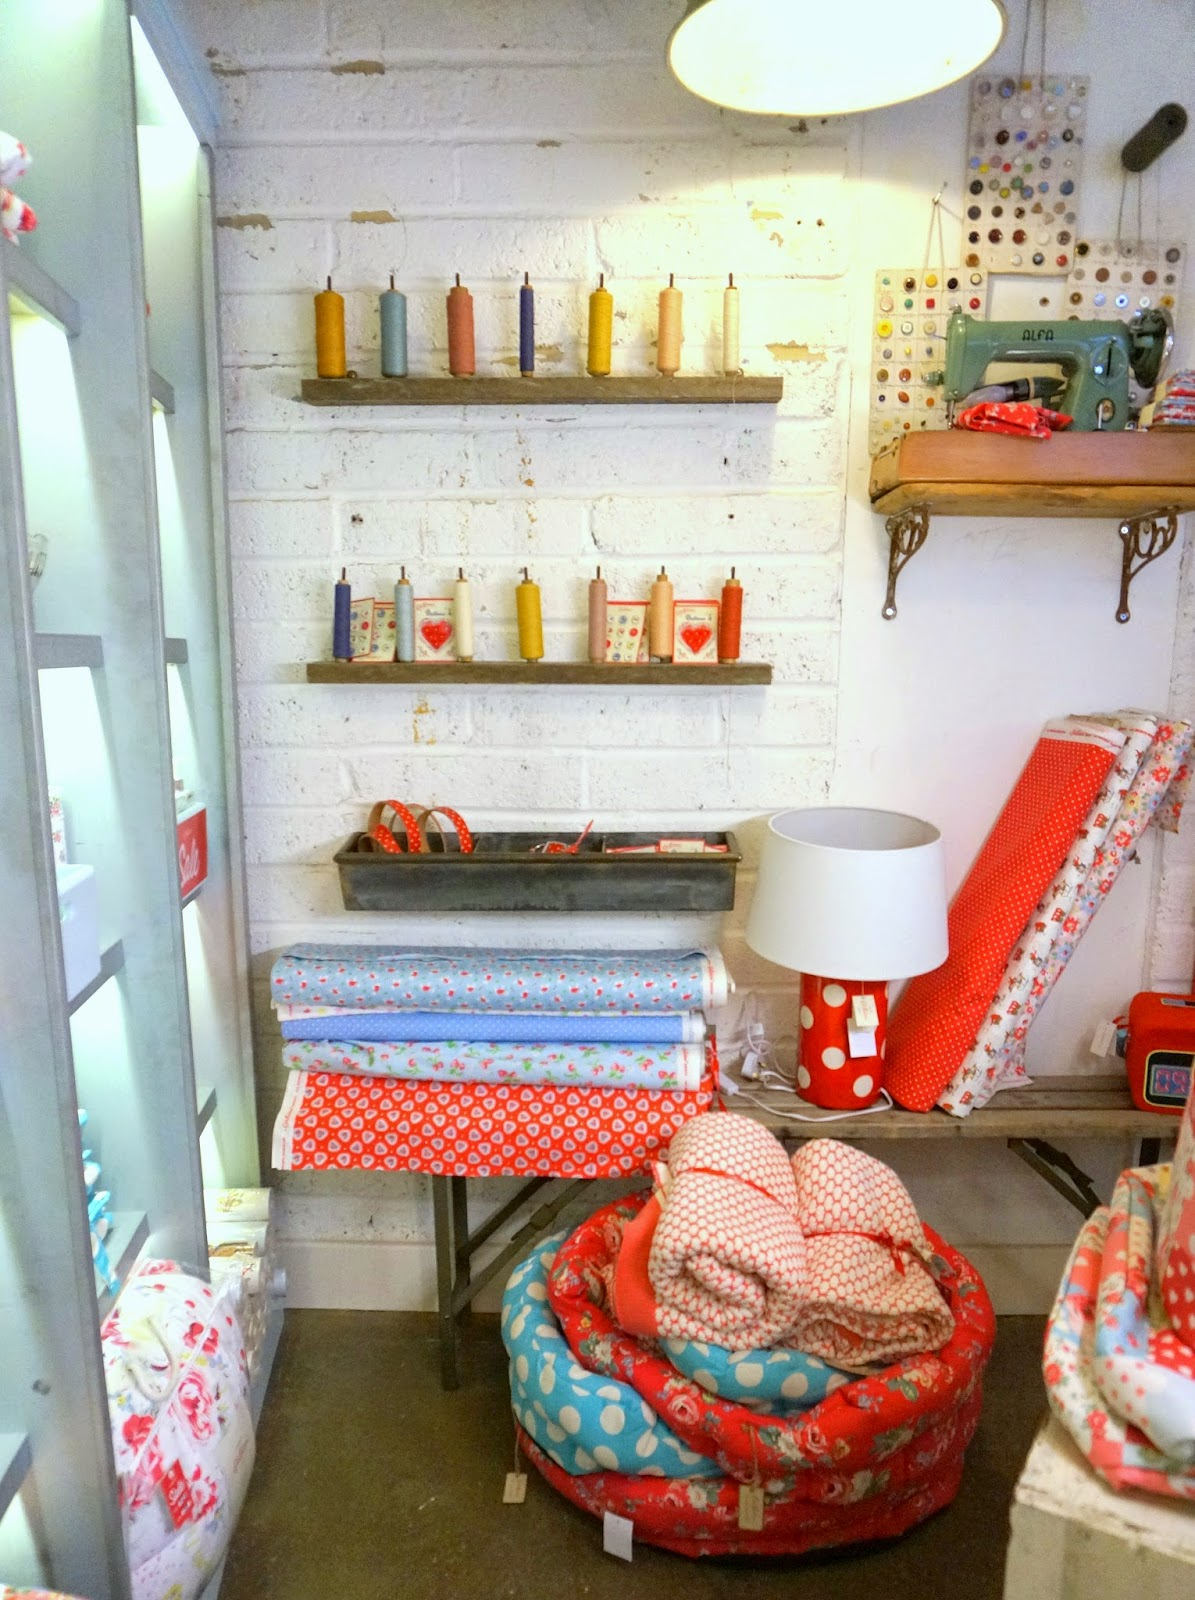 Fabric shopping in london diary of a quilter a quilt blog was the cath kidston shops ive been a total sucker for caths style for a while now and those shops are so full of my kind of color and inspiration doublecrazyfo Images